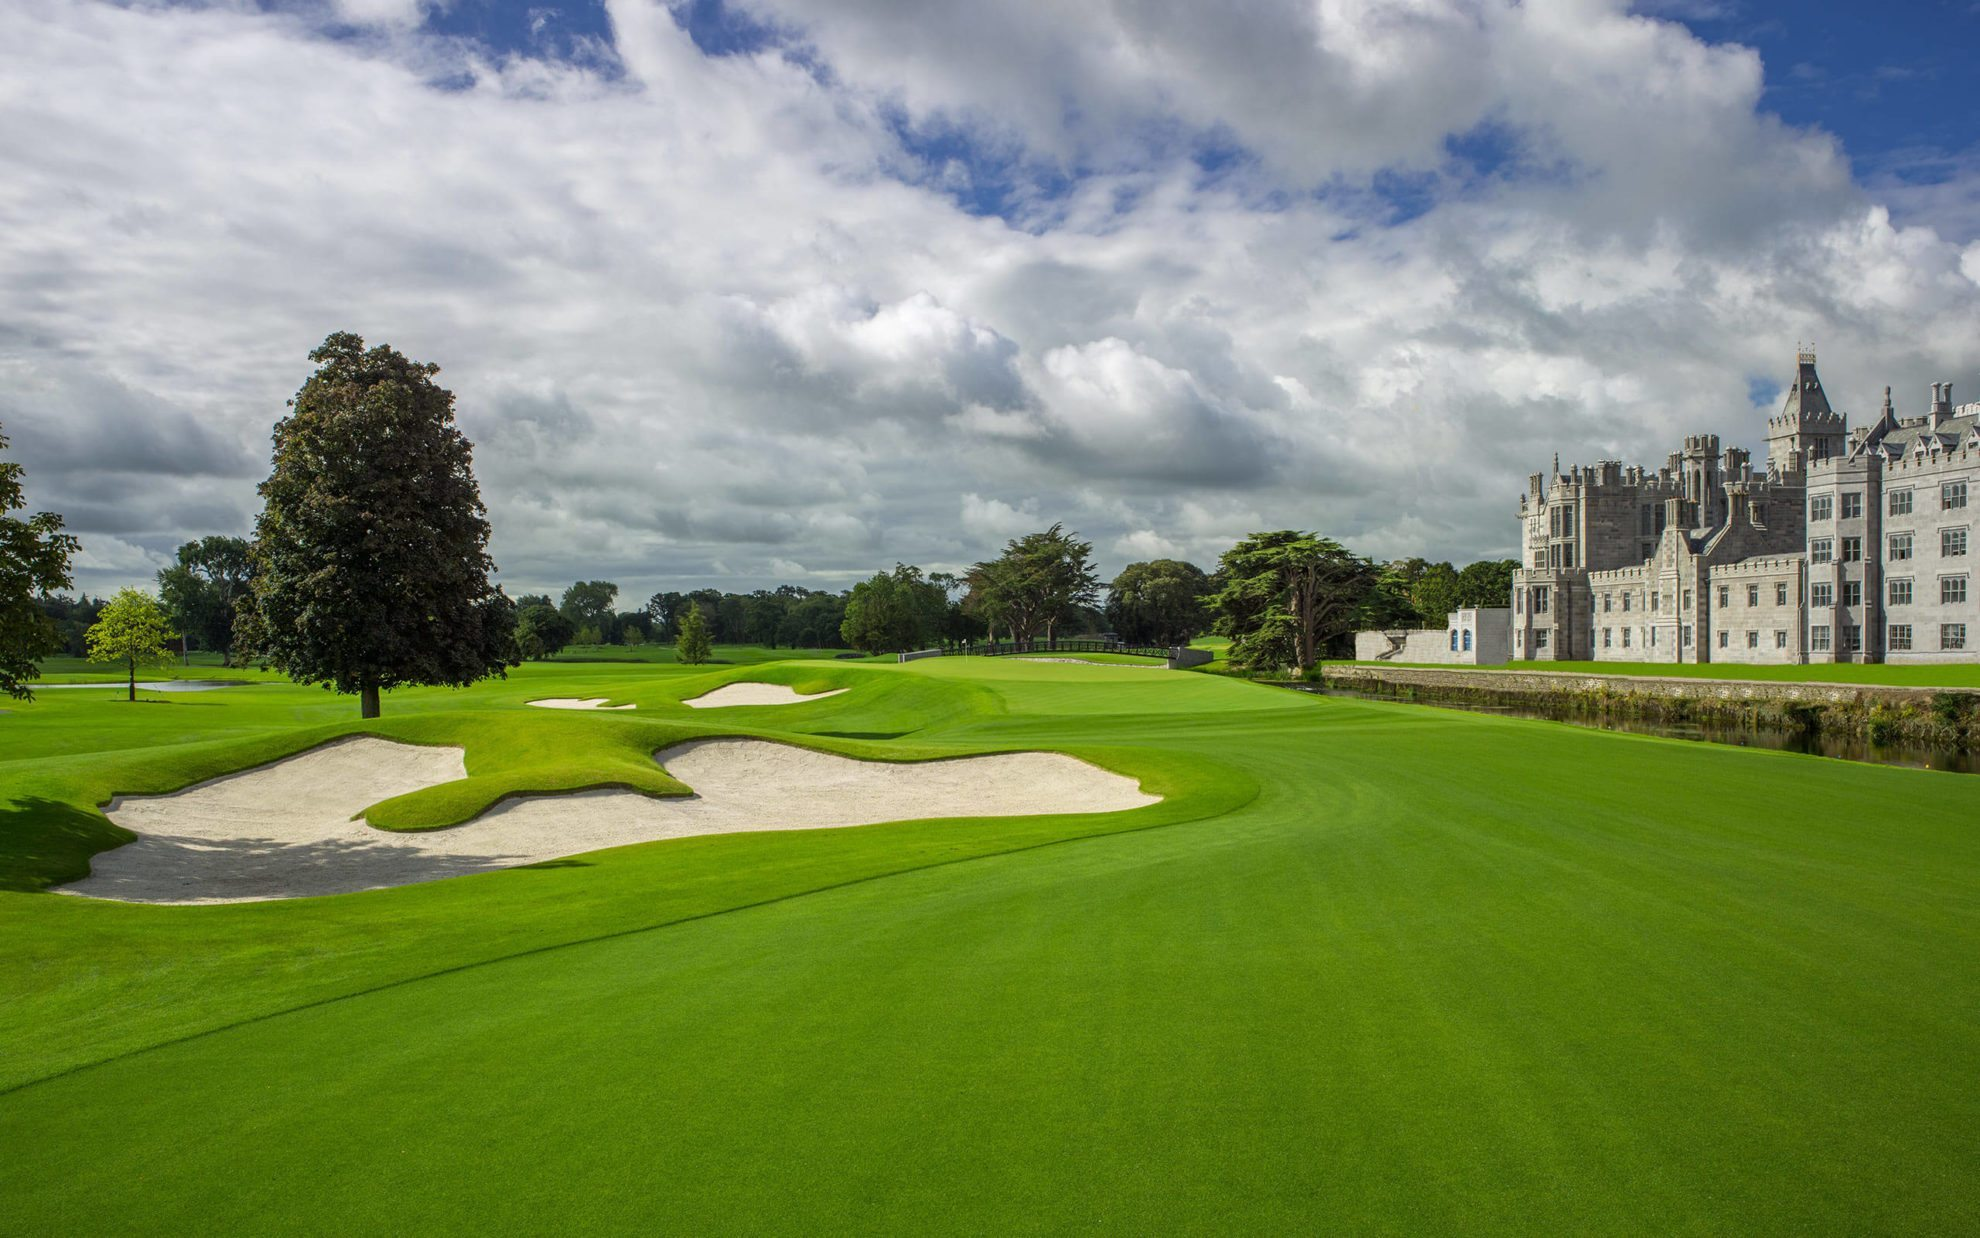 Ryder Cup returns to Ireland for 2026 match at Adare Manor